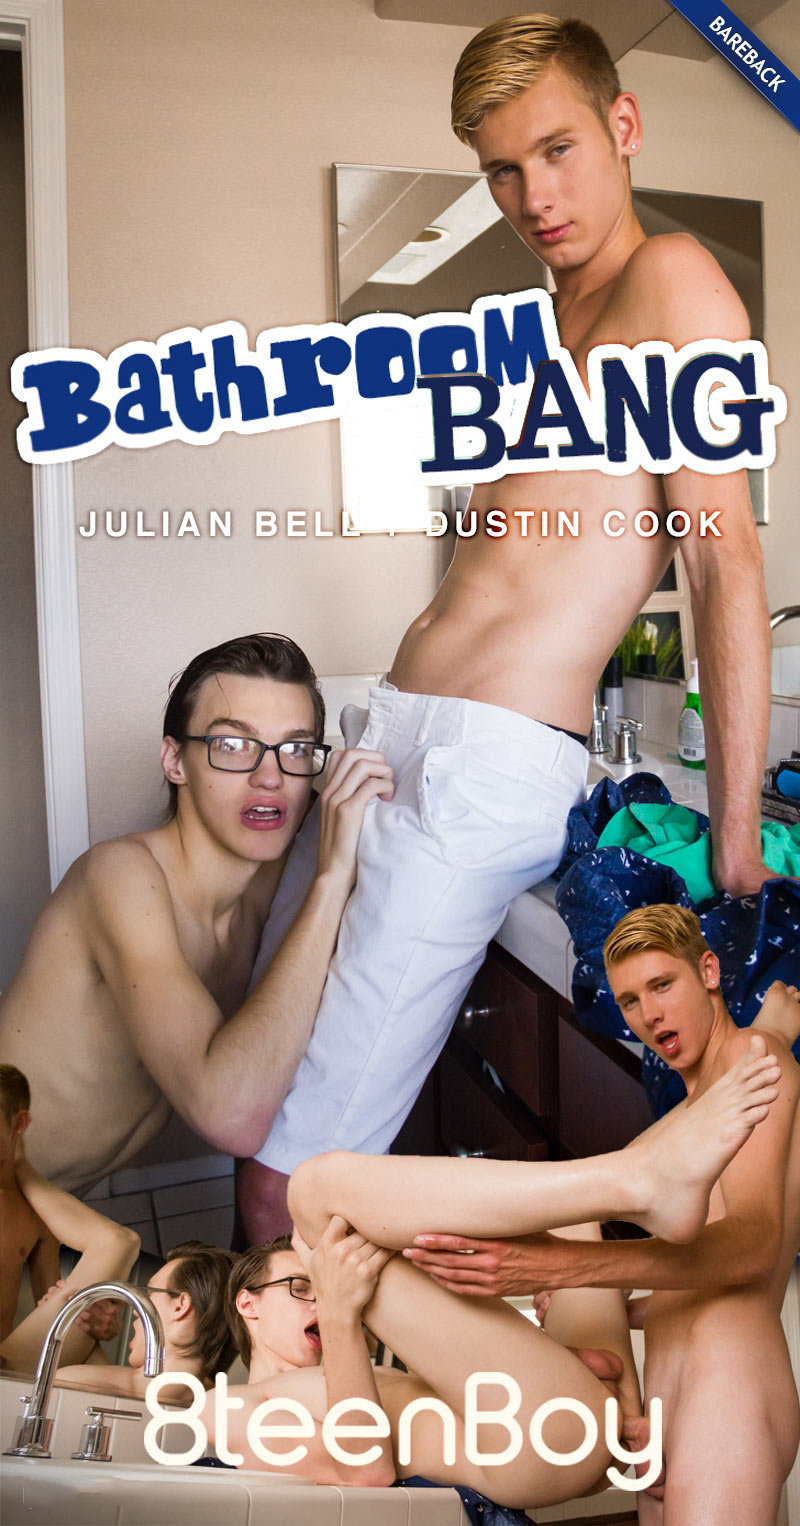 Bathroom Bang (Julian Bell and Dustin Cook Flip-Fuck) (Bareback) at 8teenBoy.com